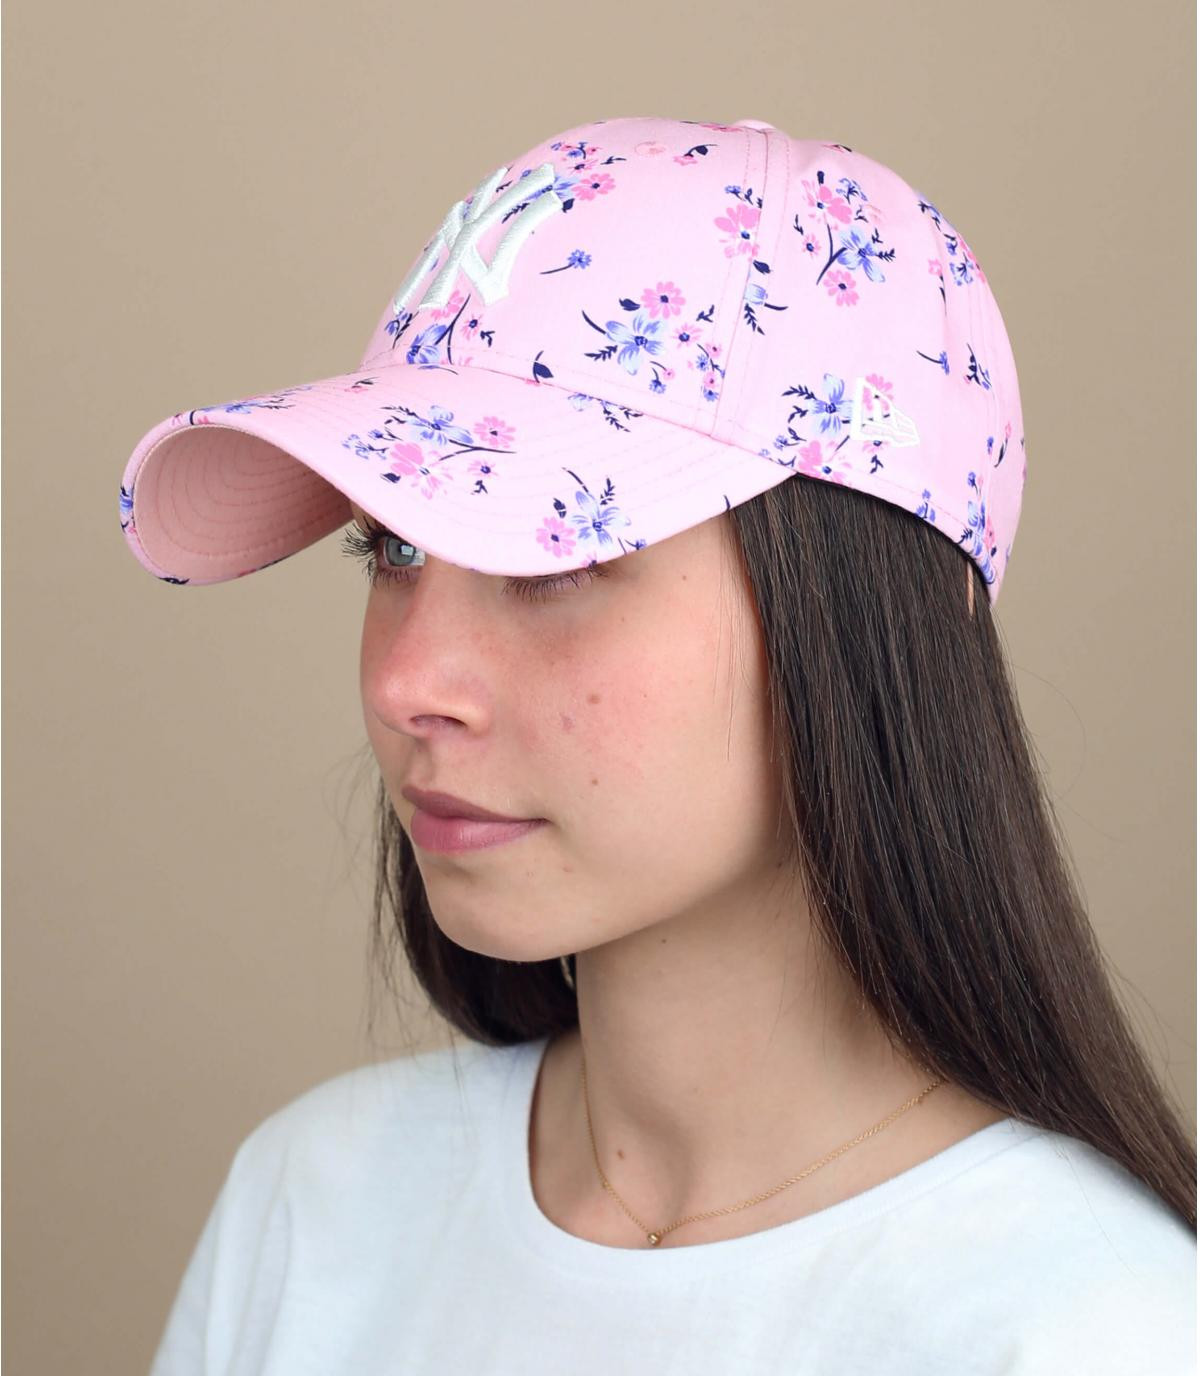 gorra mujer rosa flores